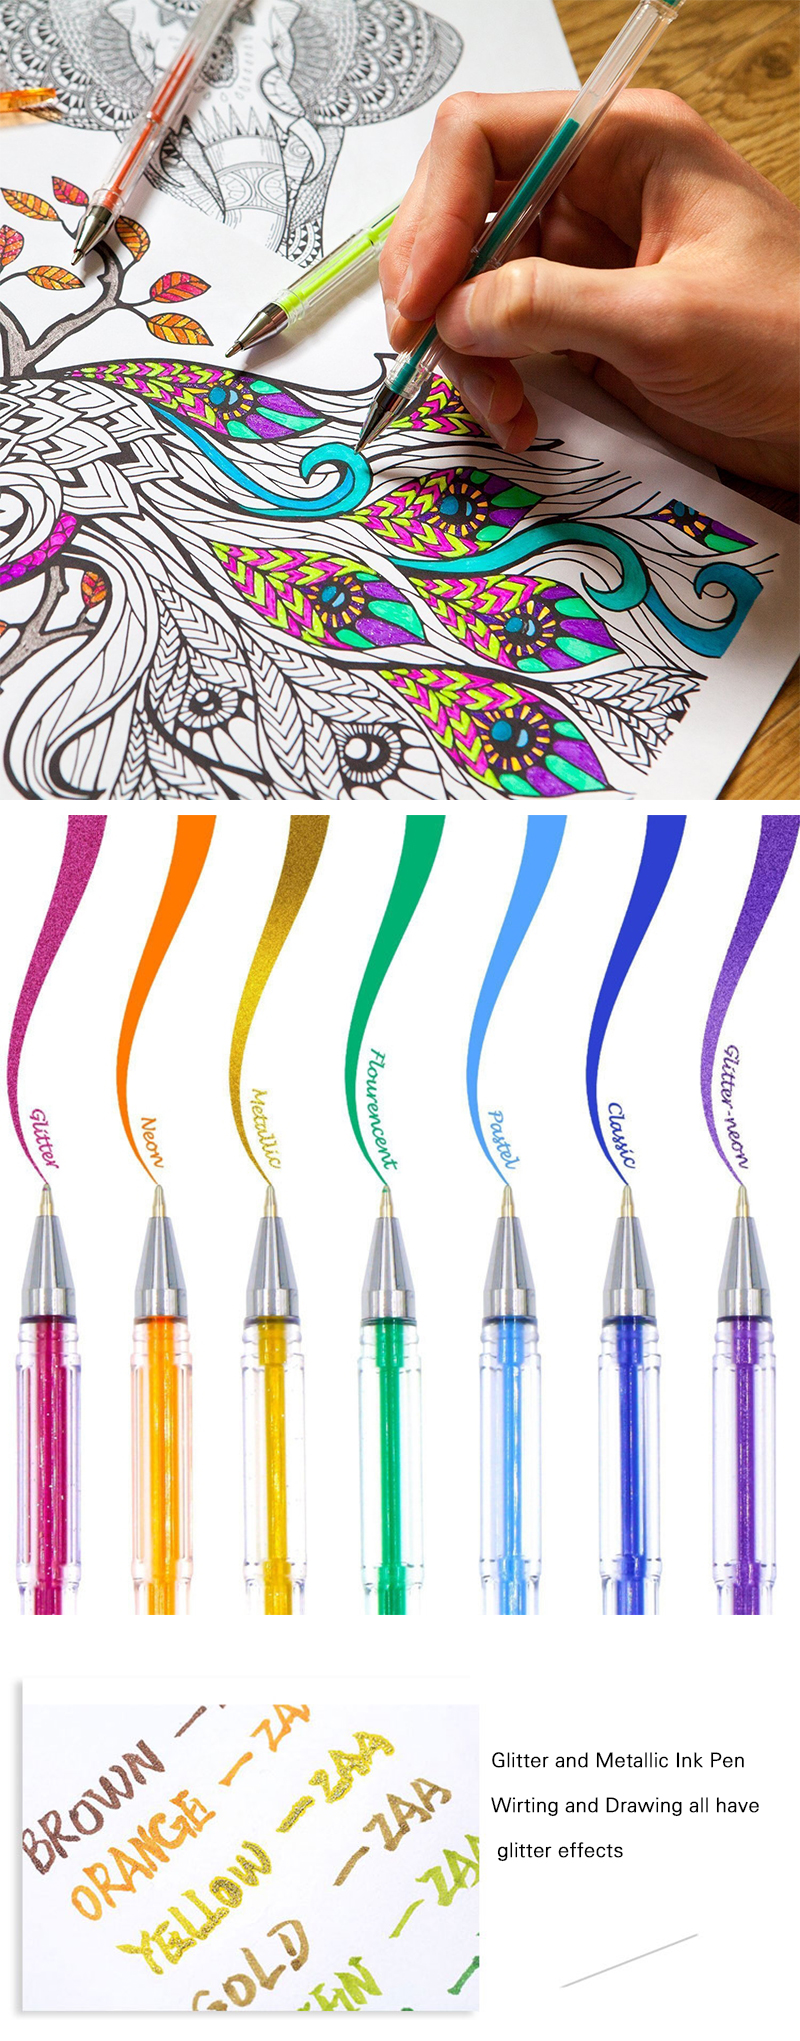 High Quality 100 Colors Gel Pens Set Refills Fluorescent Metallic Pastel Neon Glitter Classic Sketch Drawing Color Pen